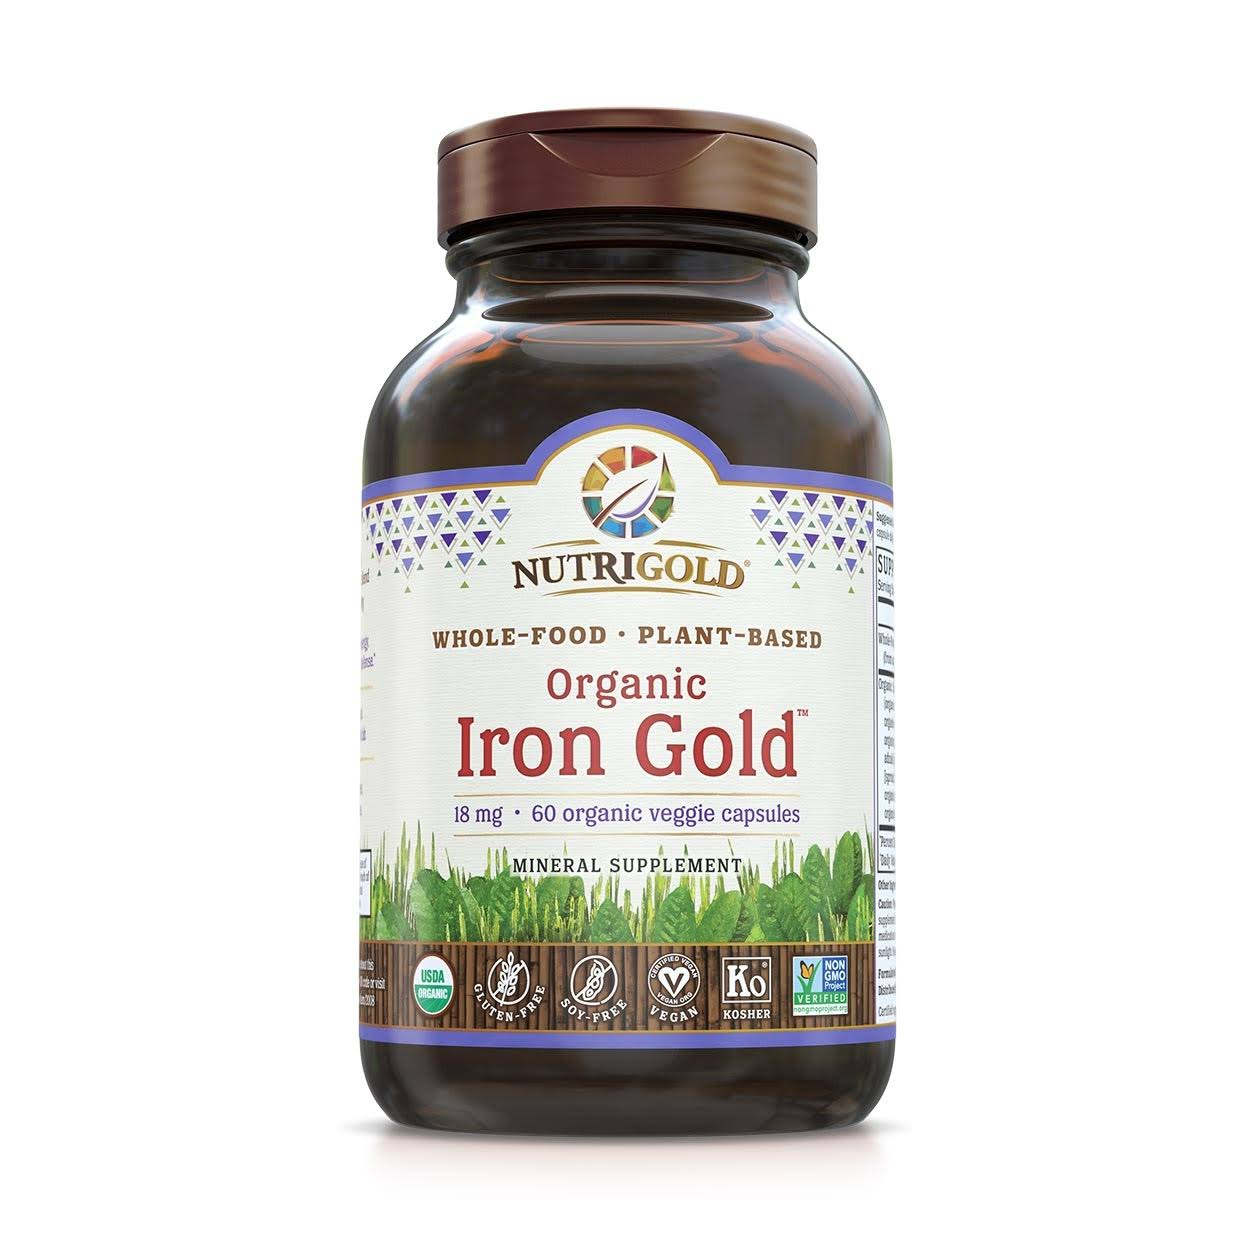 NutriGold Organic Iron Gold Mineral Supplement - 18mg, 60ct